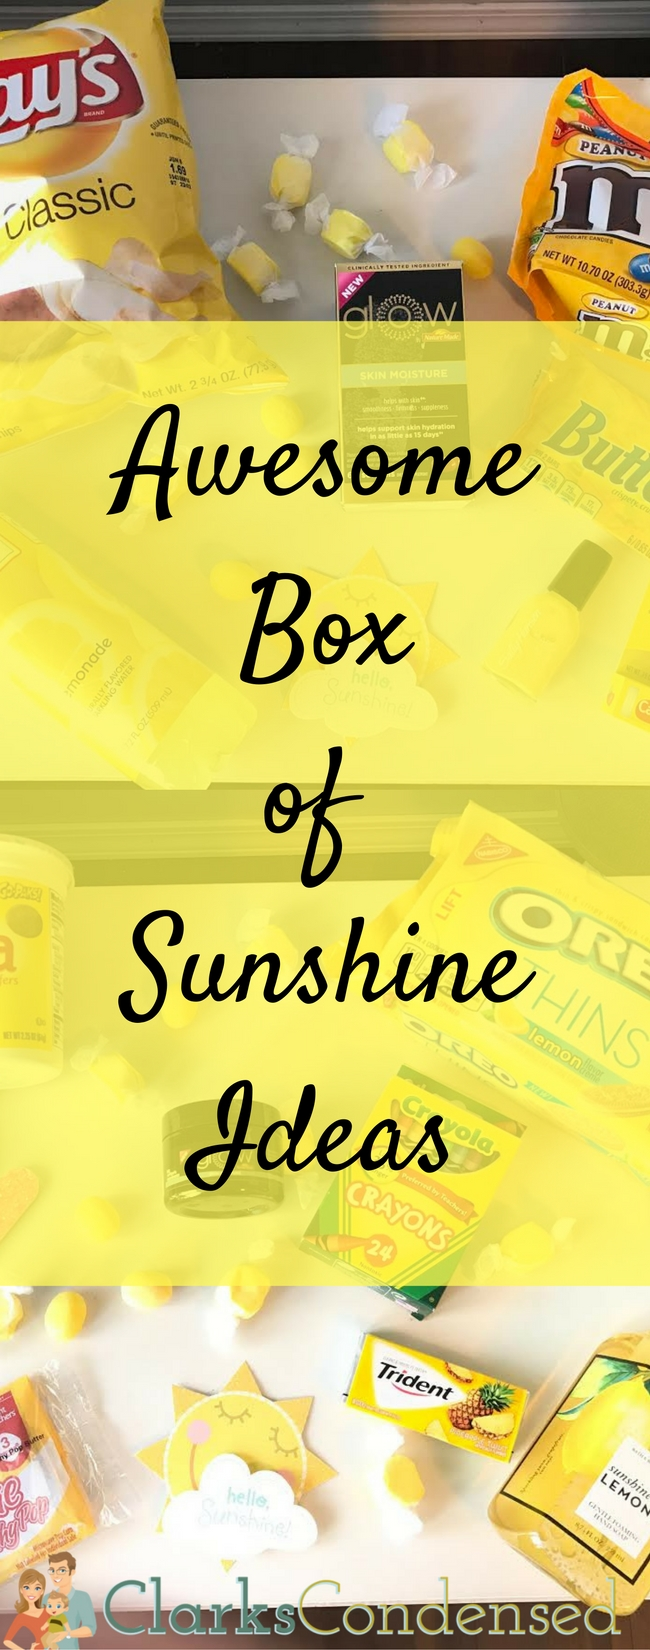 Box of Sunshine Ideas / Box of Sunshine / Sunshine Box Ideas / Care package ideas